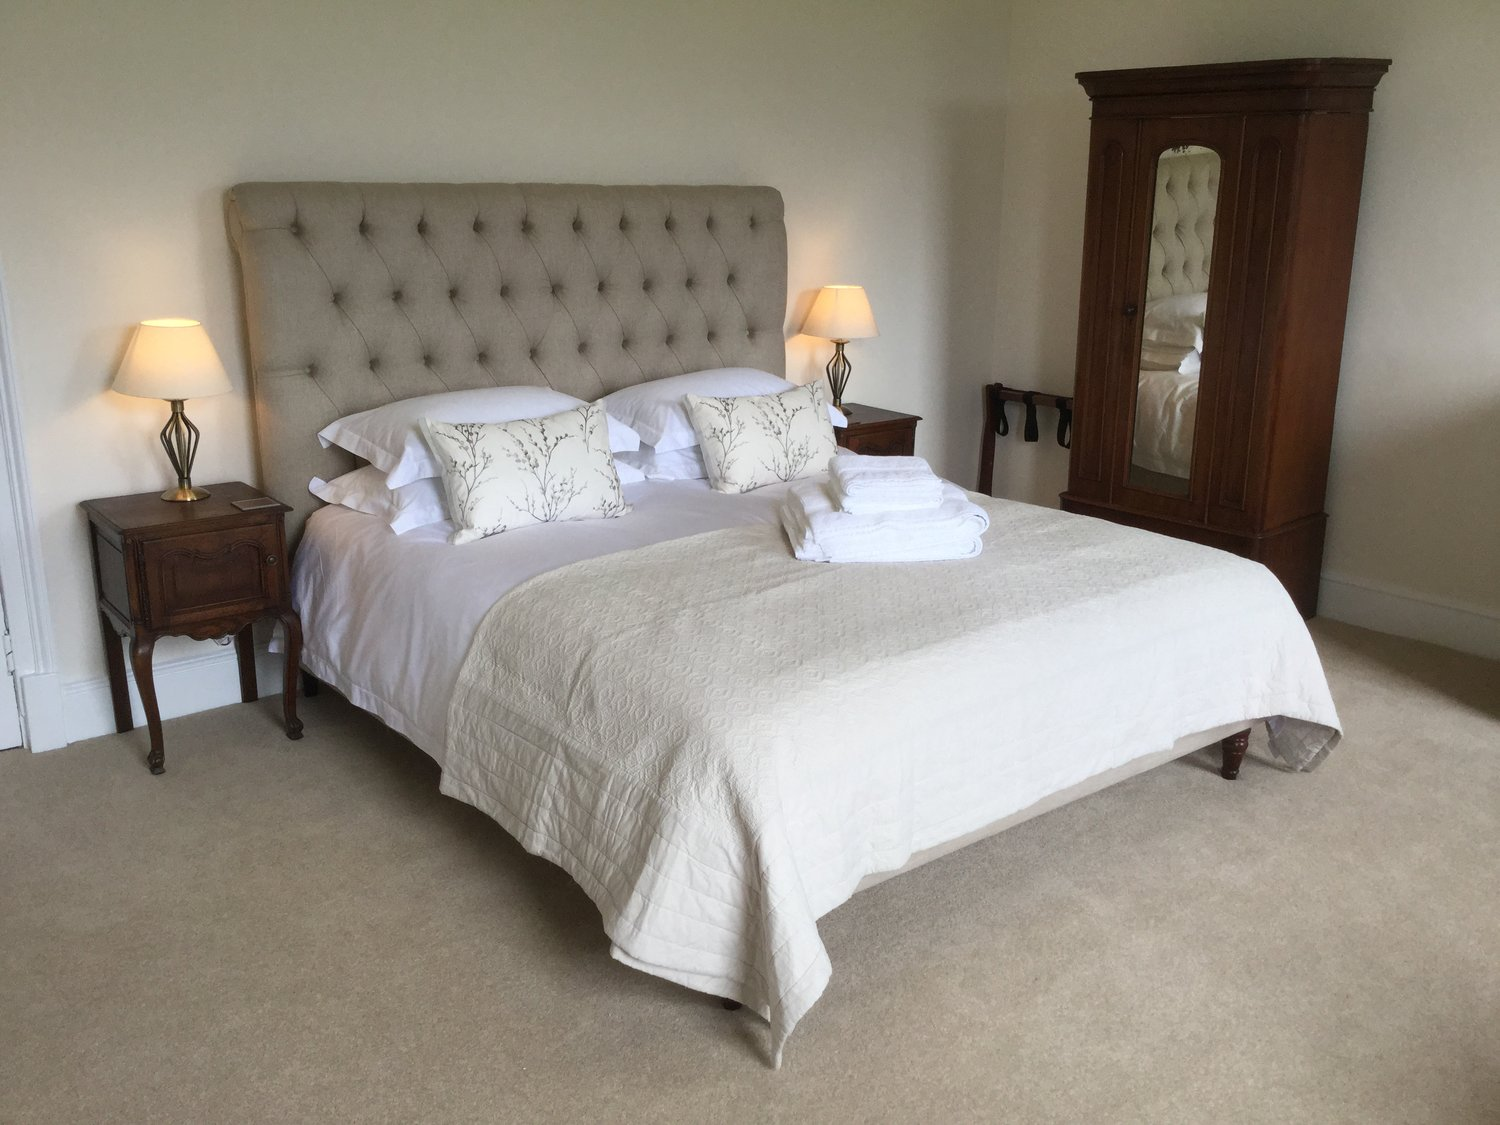 The Master Suite The Old Vicarage At Oakridge - Oakridge bedroom furniture